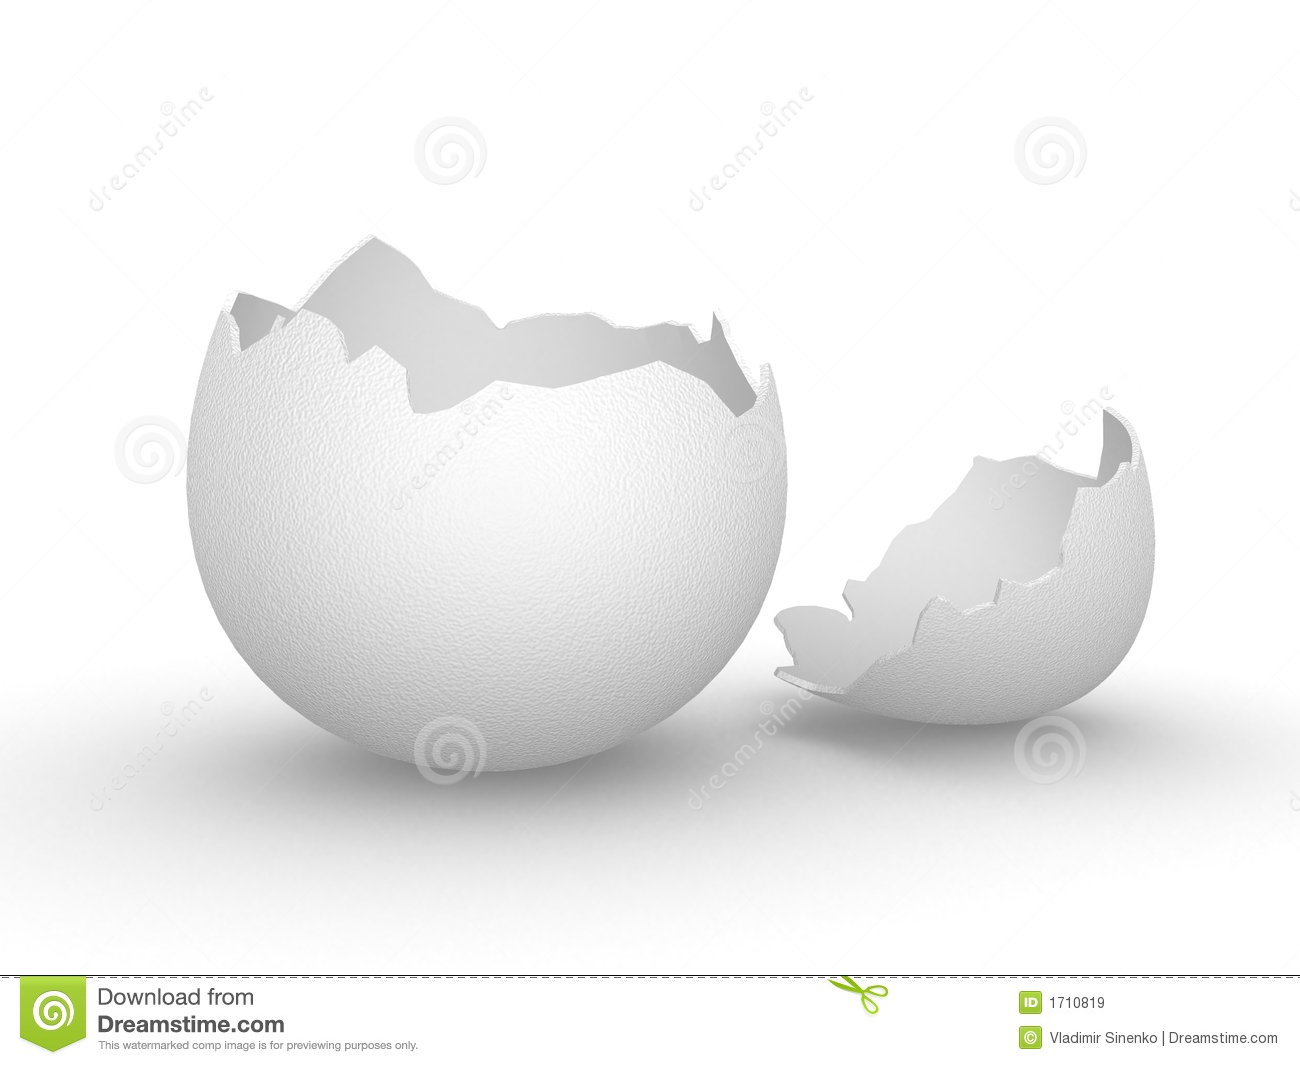 Cracked egg shell clipart picture freeuse Broken Empty Eggshell Royalty Free Stock Images - Image: 1710819 picture freeuse